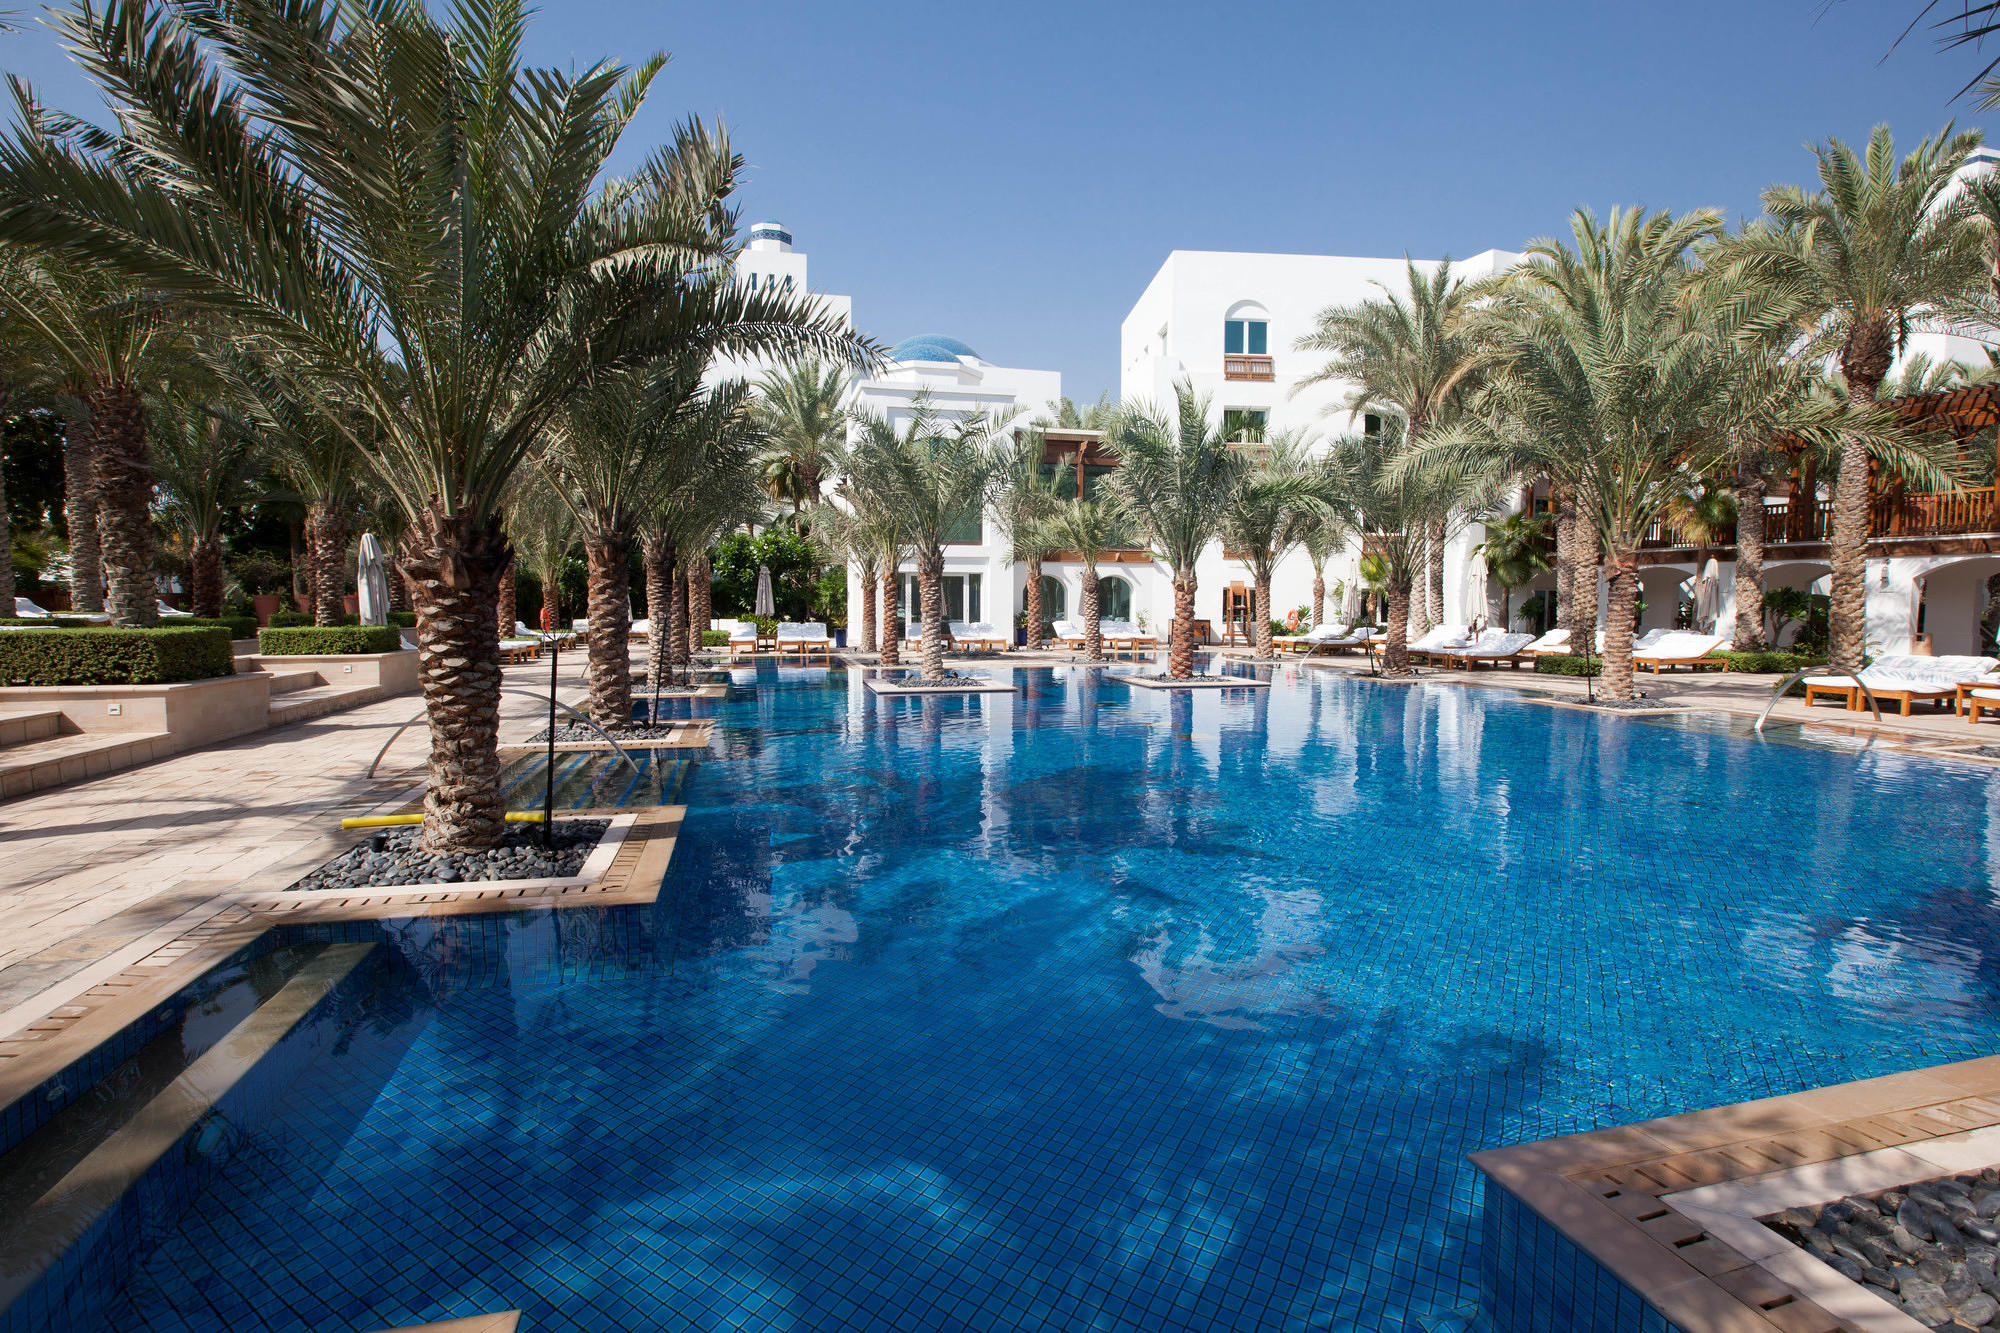 10 Best Bang-for-Your-Buck Hotels in Dubai